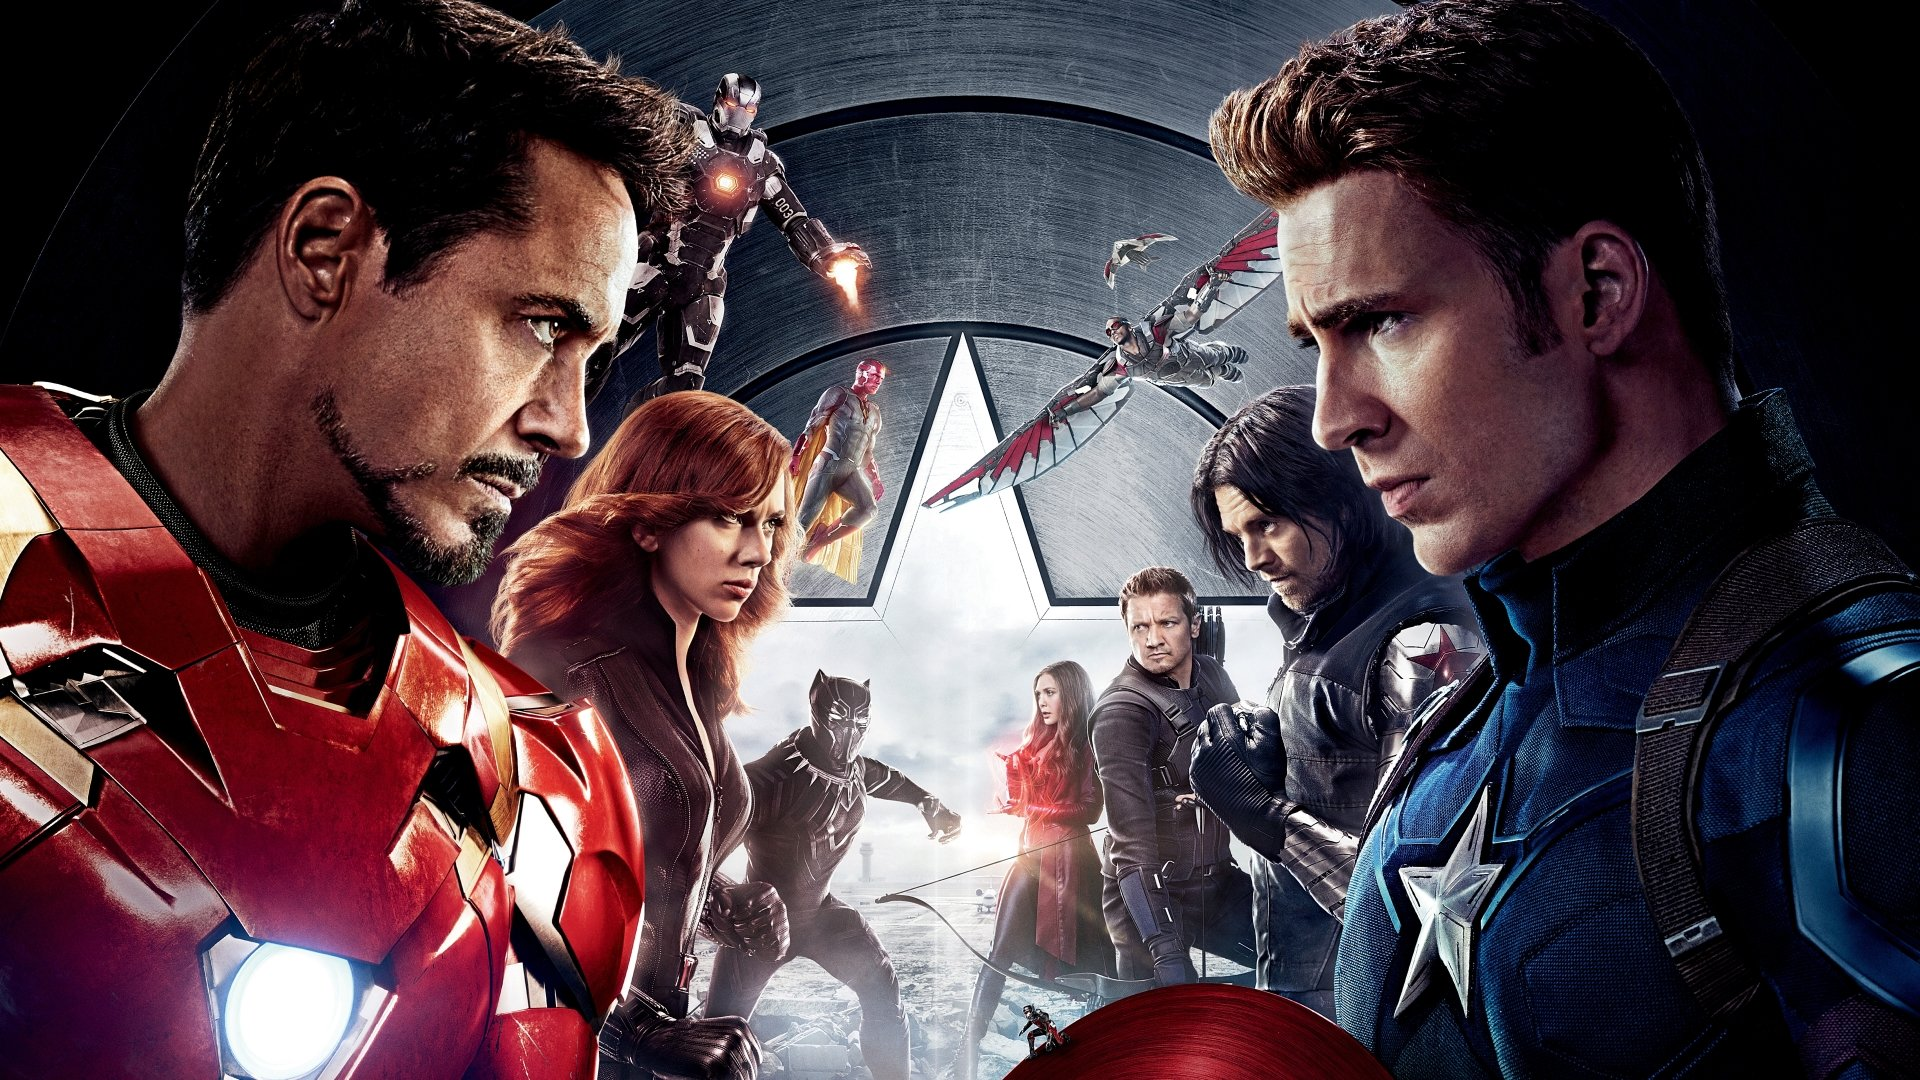 Filmy - Kapitan Ameryka: Wojna Bohaterów  Hawkeye Jeremy Renner Robert Downey Jr. Iron Man Chris Evans Kapitan Ameryka Scarlett Johansson Black Widow Winter Soldier Sebastian Stan Black Panther (Marvel Comics) Chadwick Boseman Paul Rudd Ant-Man Elizabeth Olsen Scarlet Witch War Machine Don Cheadle Vision (Marvel Comics) Paul Bettany Falcon (Marvel Comics) Anthony Mackie Tapeta